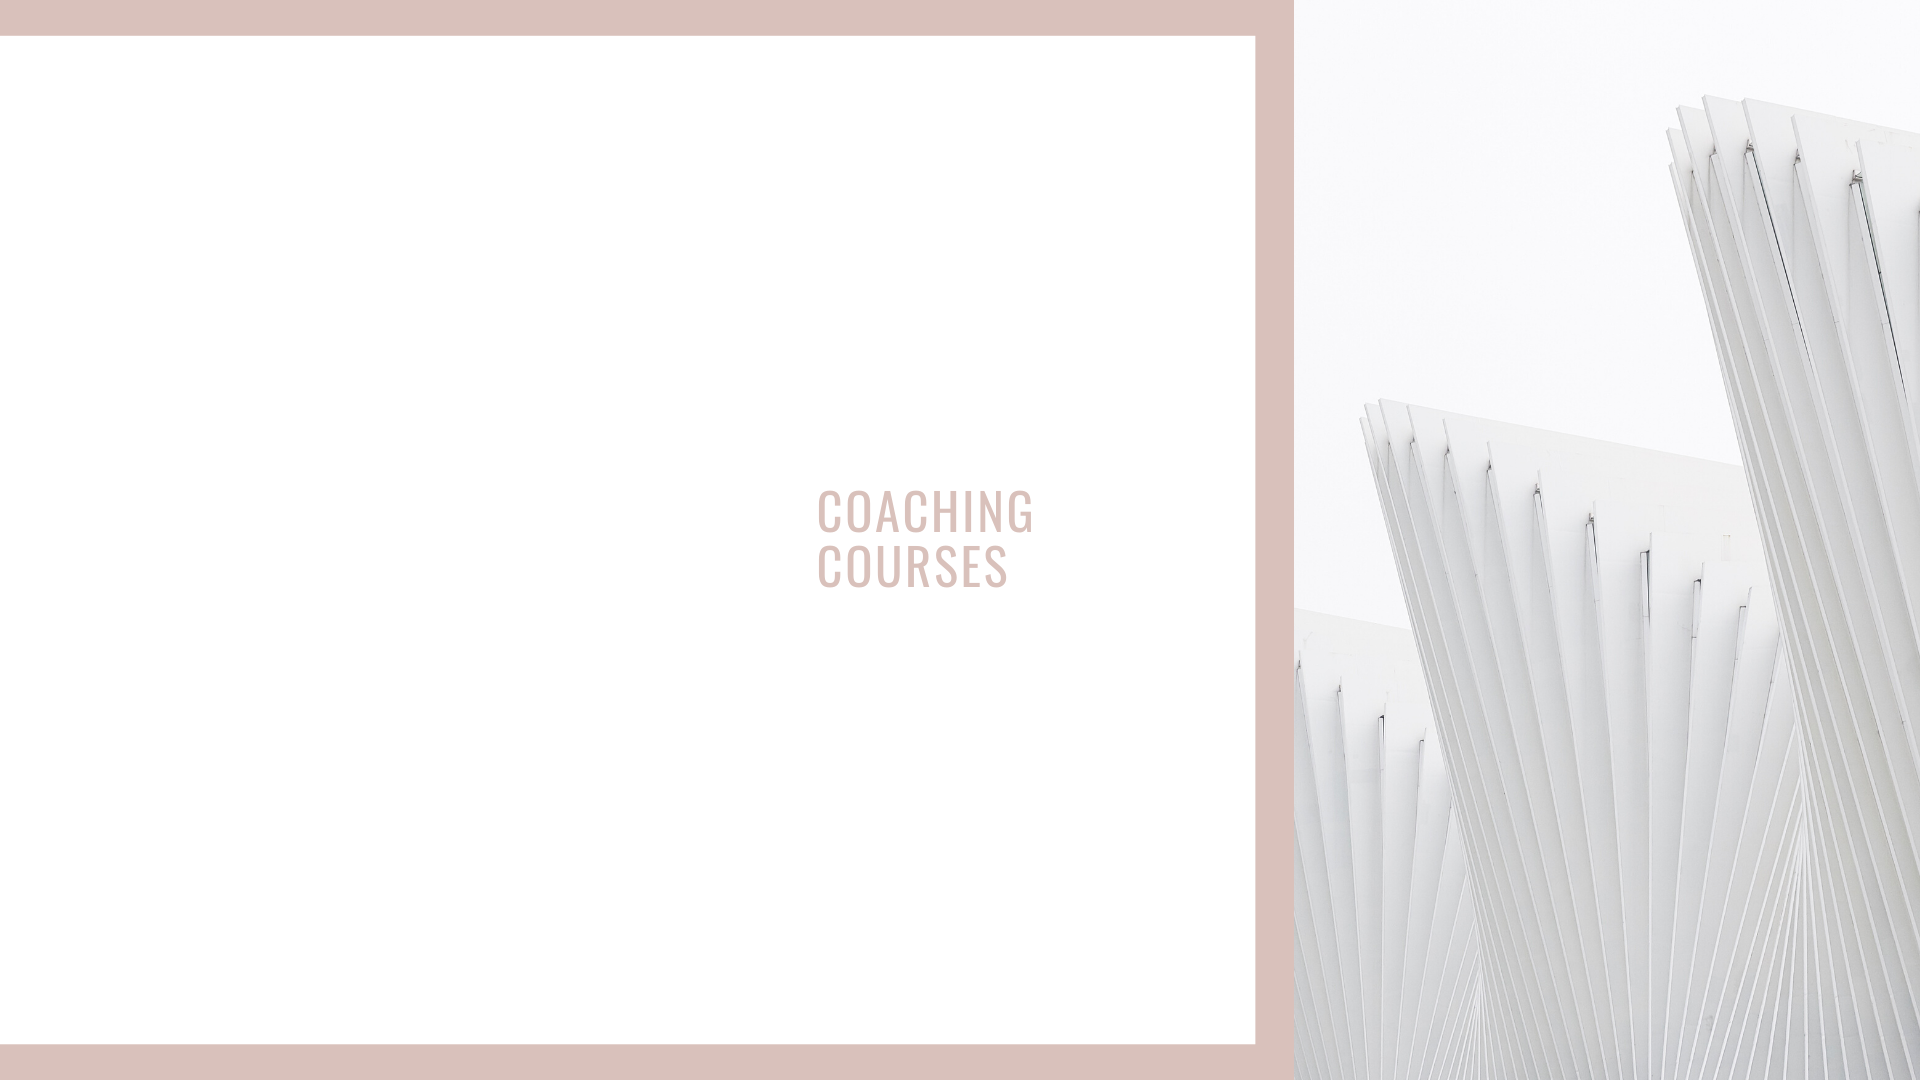 Coaching Courses